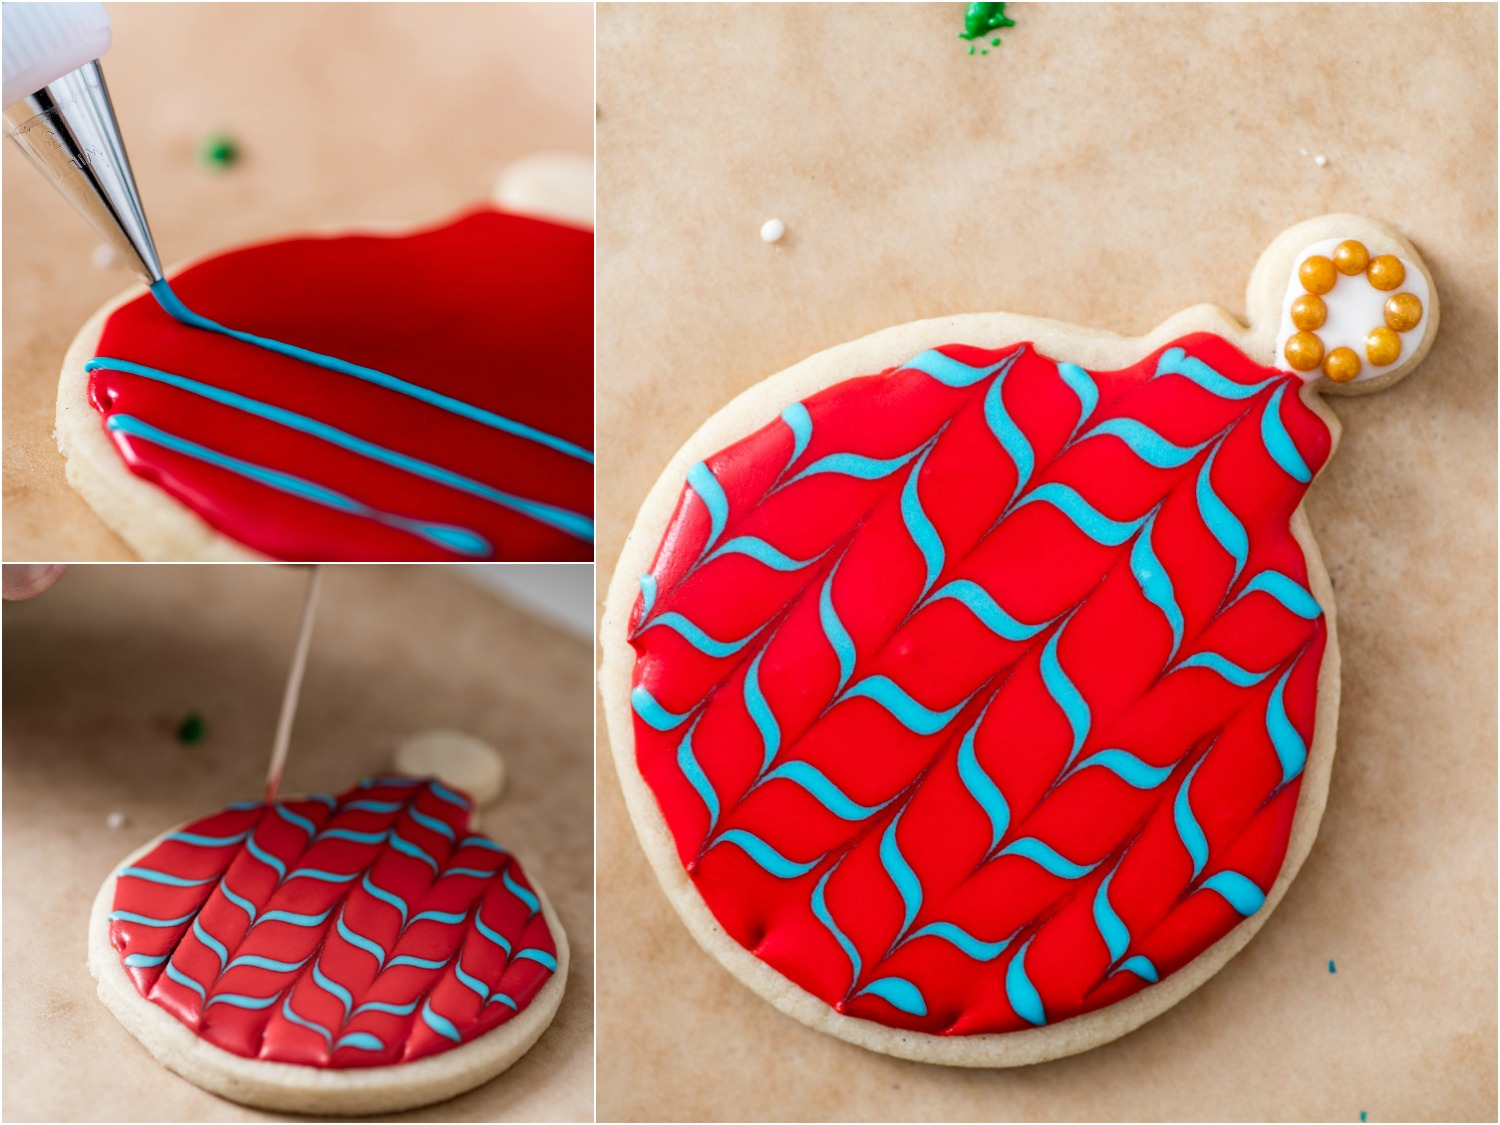 20161207-holiday-cookie-decorating-icing-sugar-cookies-vicky-wasik-zigzags-collage.jpg